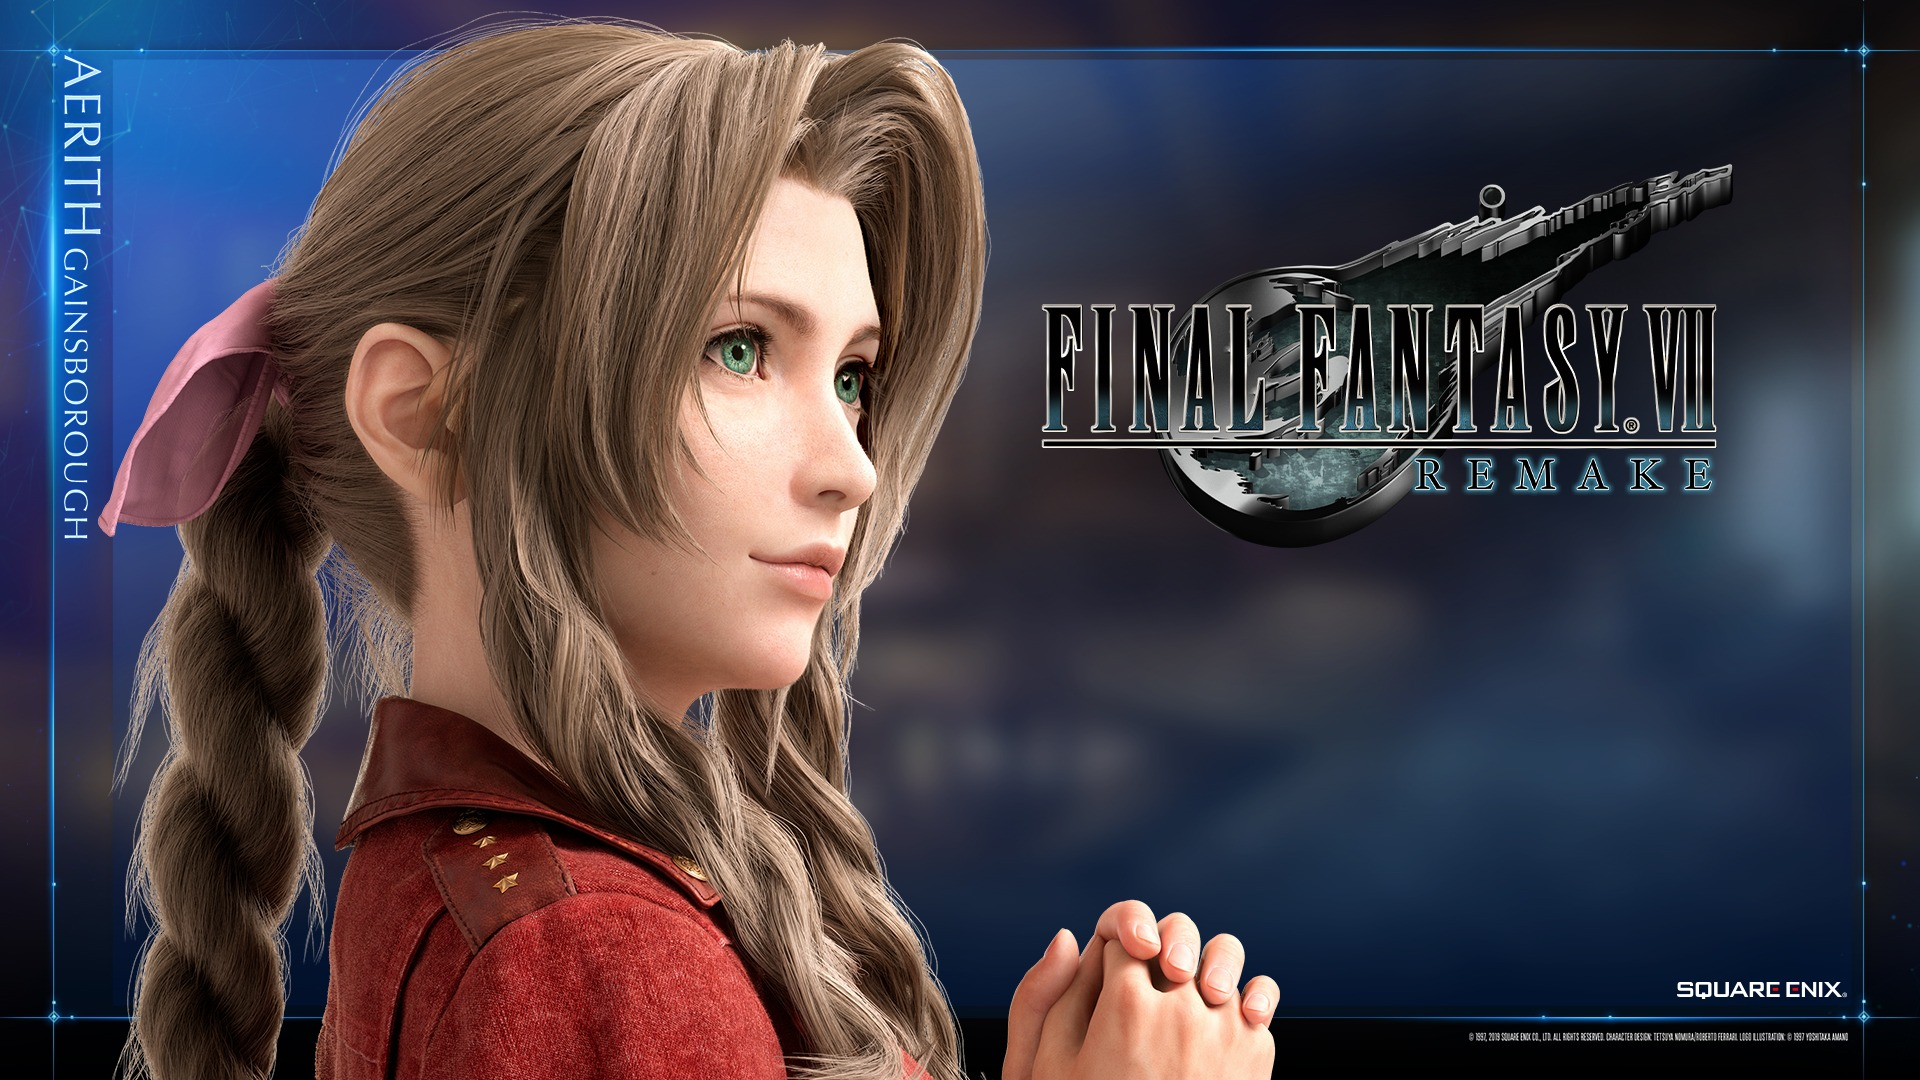 Final Fantasy VII Remake Demo And Patapon 2 Remastered Icons Leaked